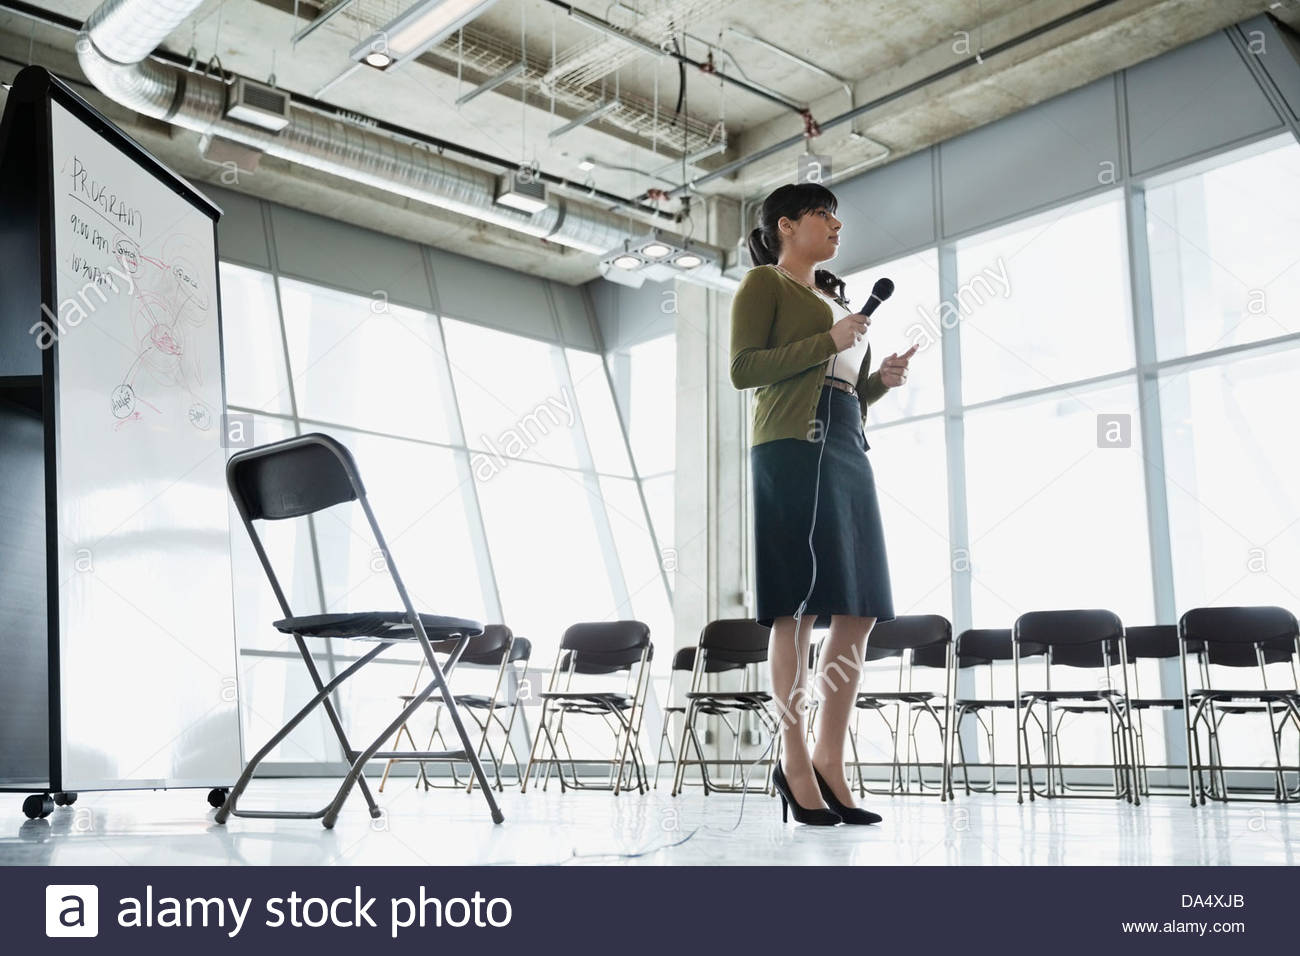 Businesswoman practicing presentation in office building - Stock Image